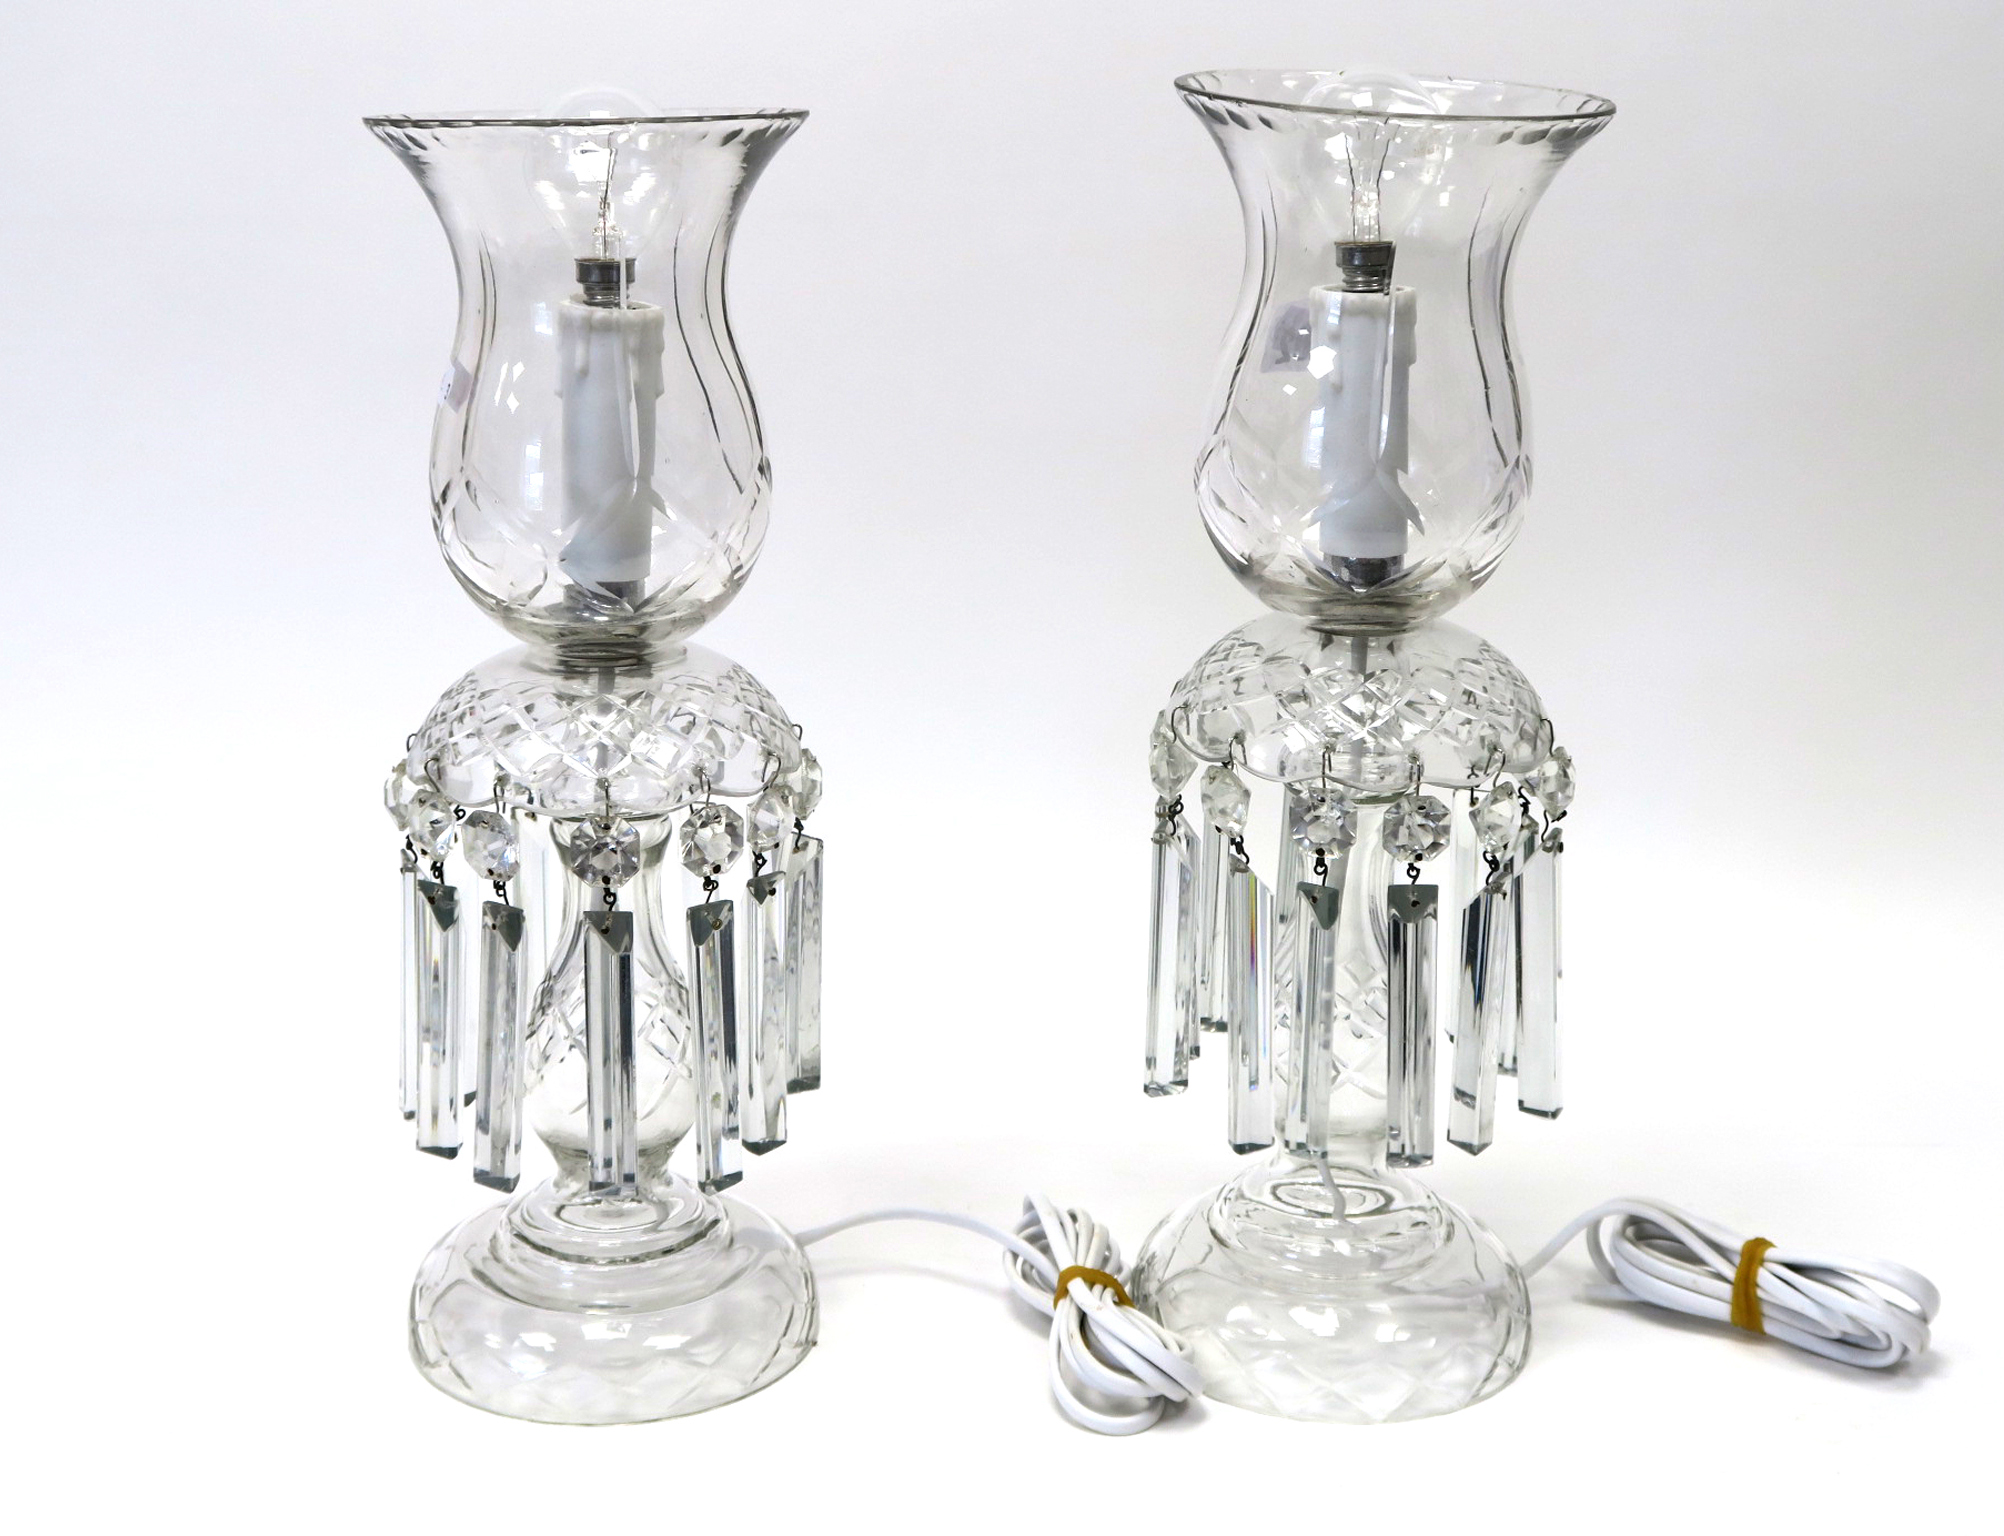 Lot 602 - A Pair of Glass Table Lamps, with bell shape shades and faceted lustre drops to baluster columns and